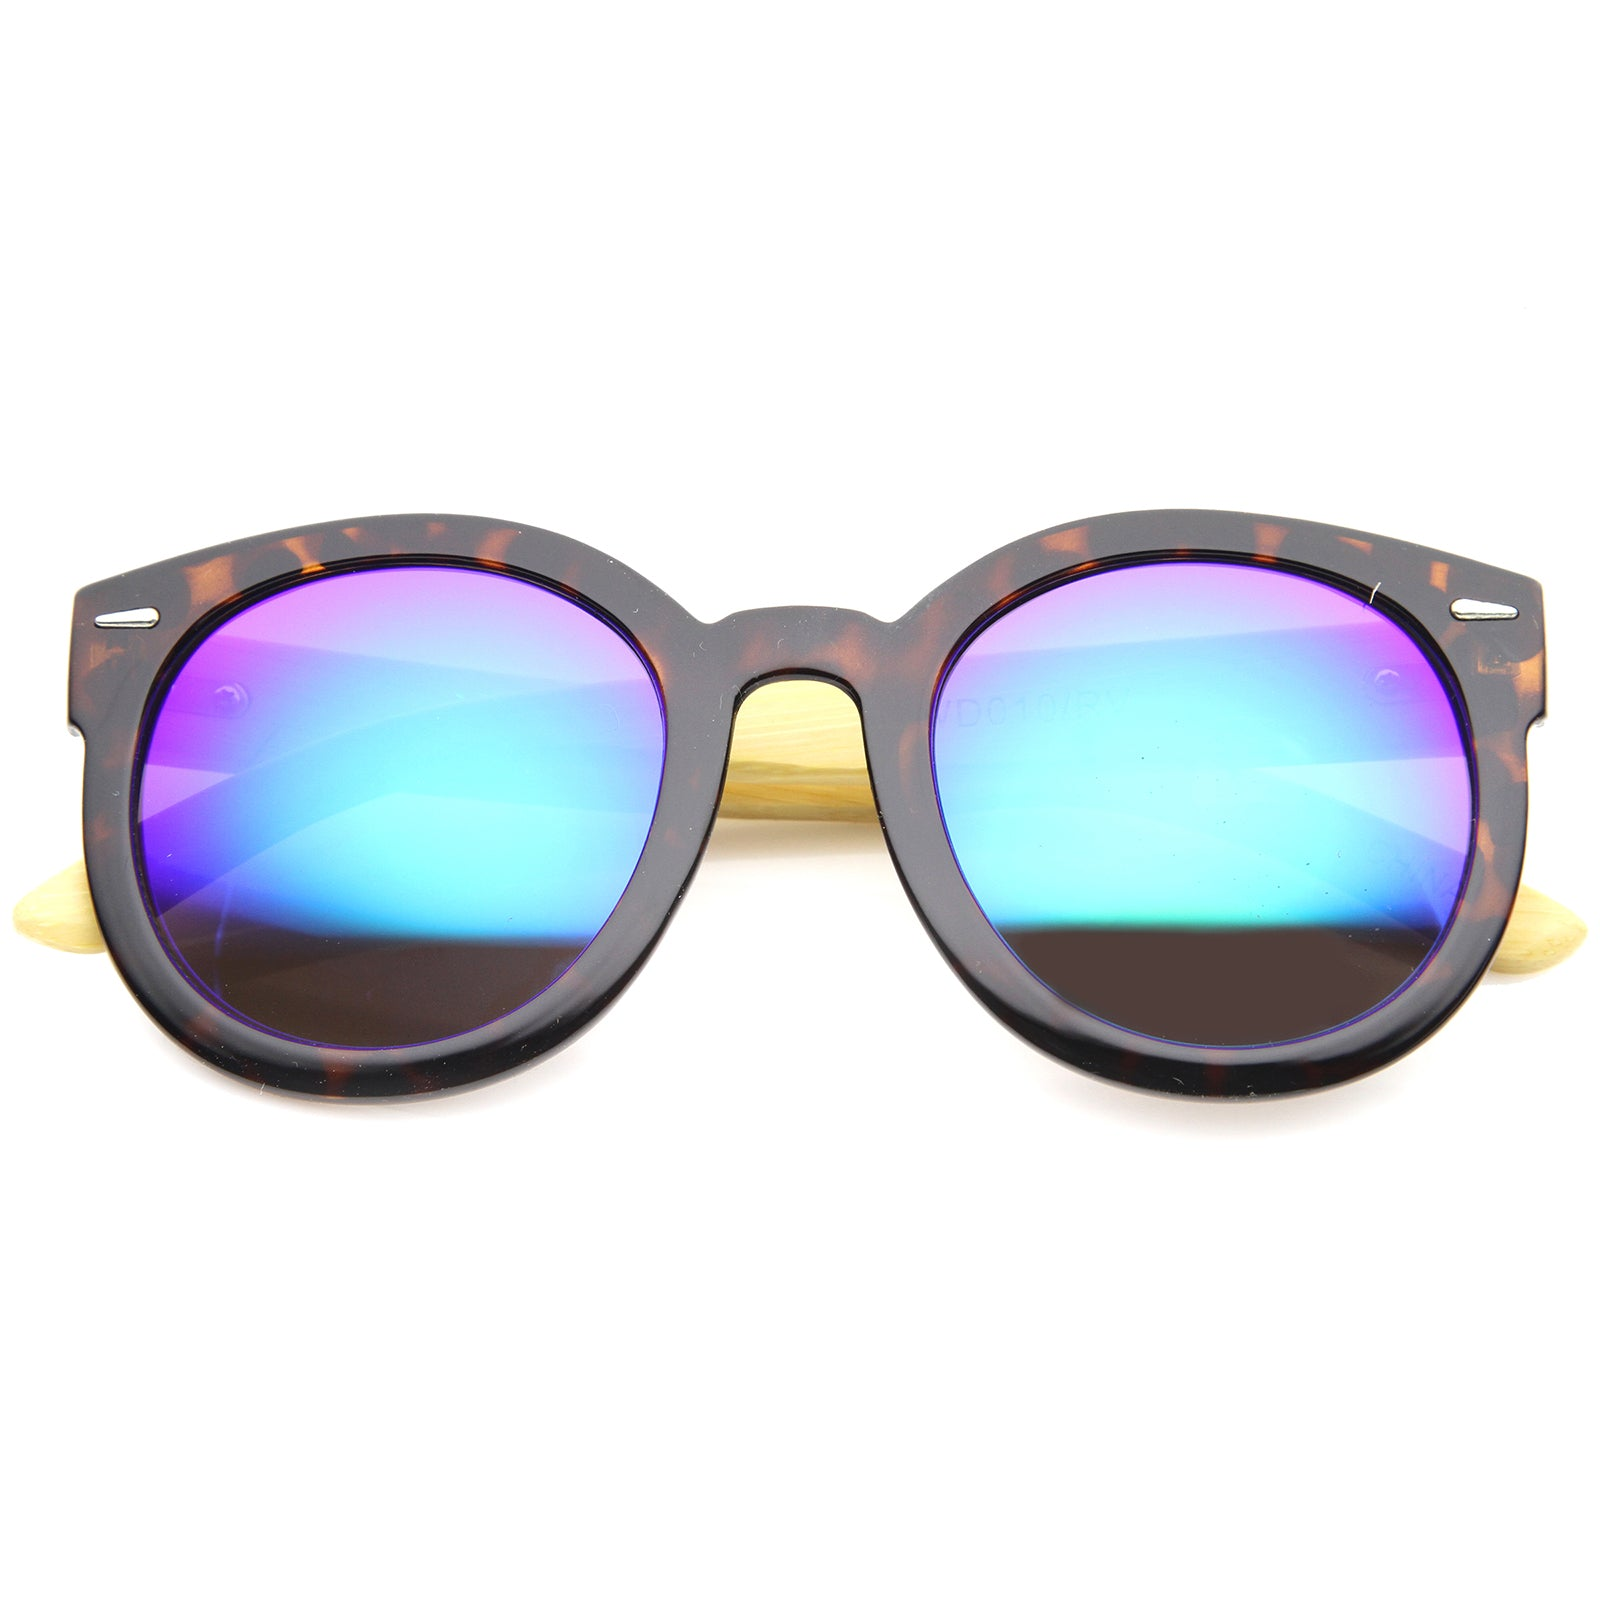 Womens Oversized Sunglasses With UV400 Protected Mirrored Lens - sunglass.la - 13